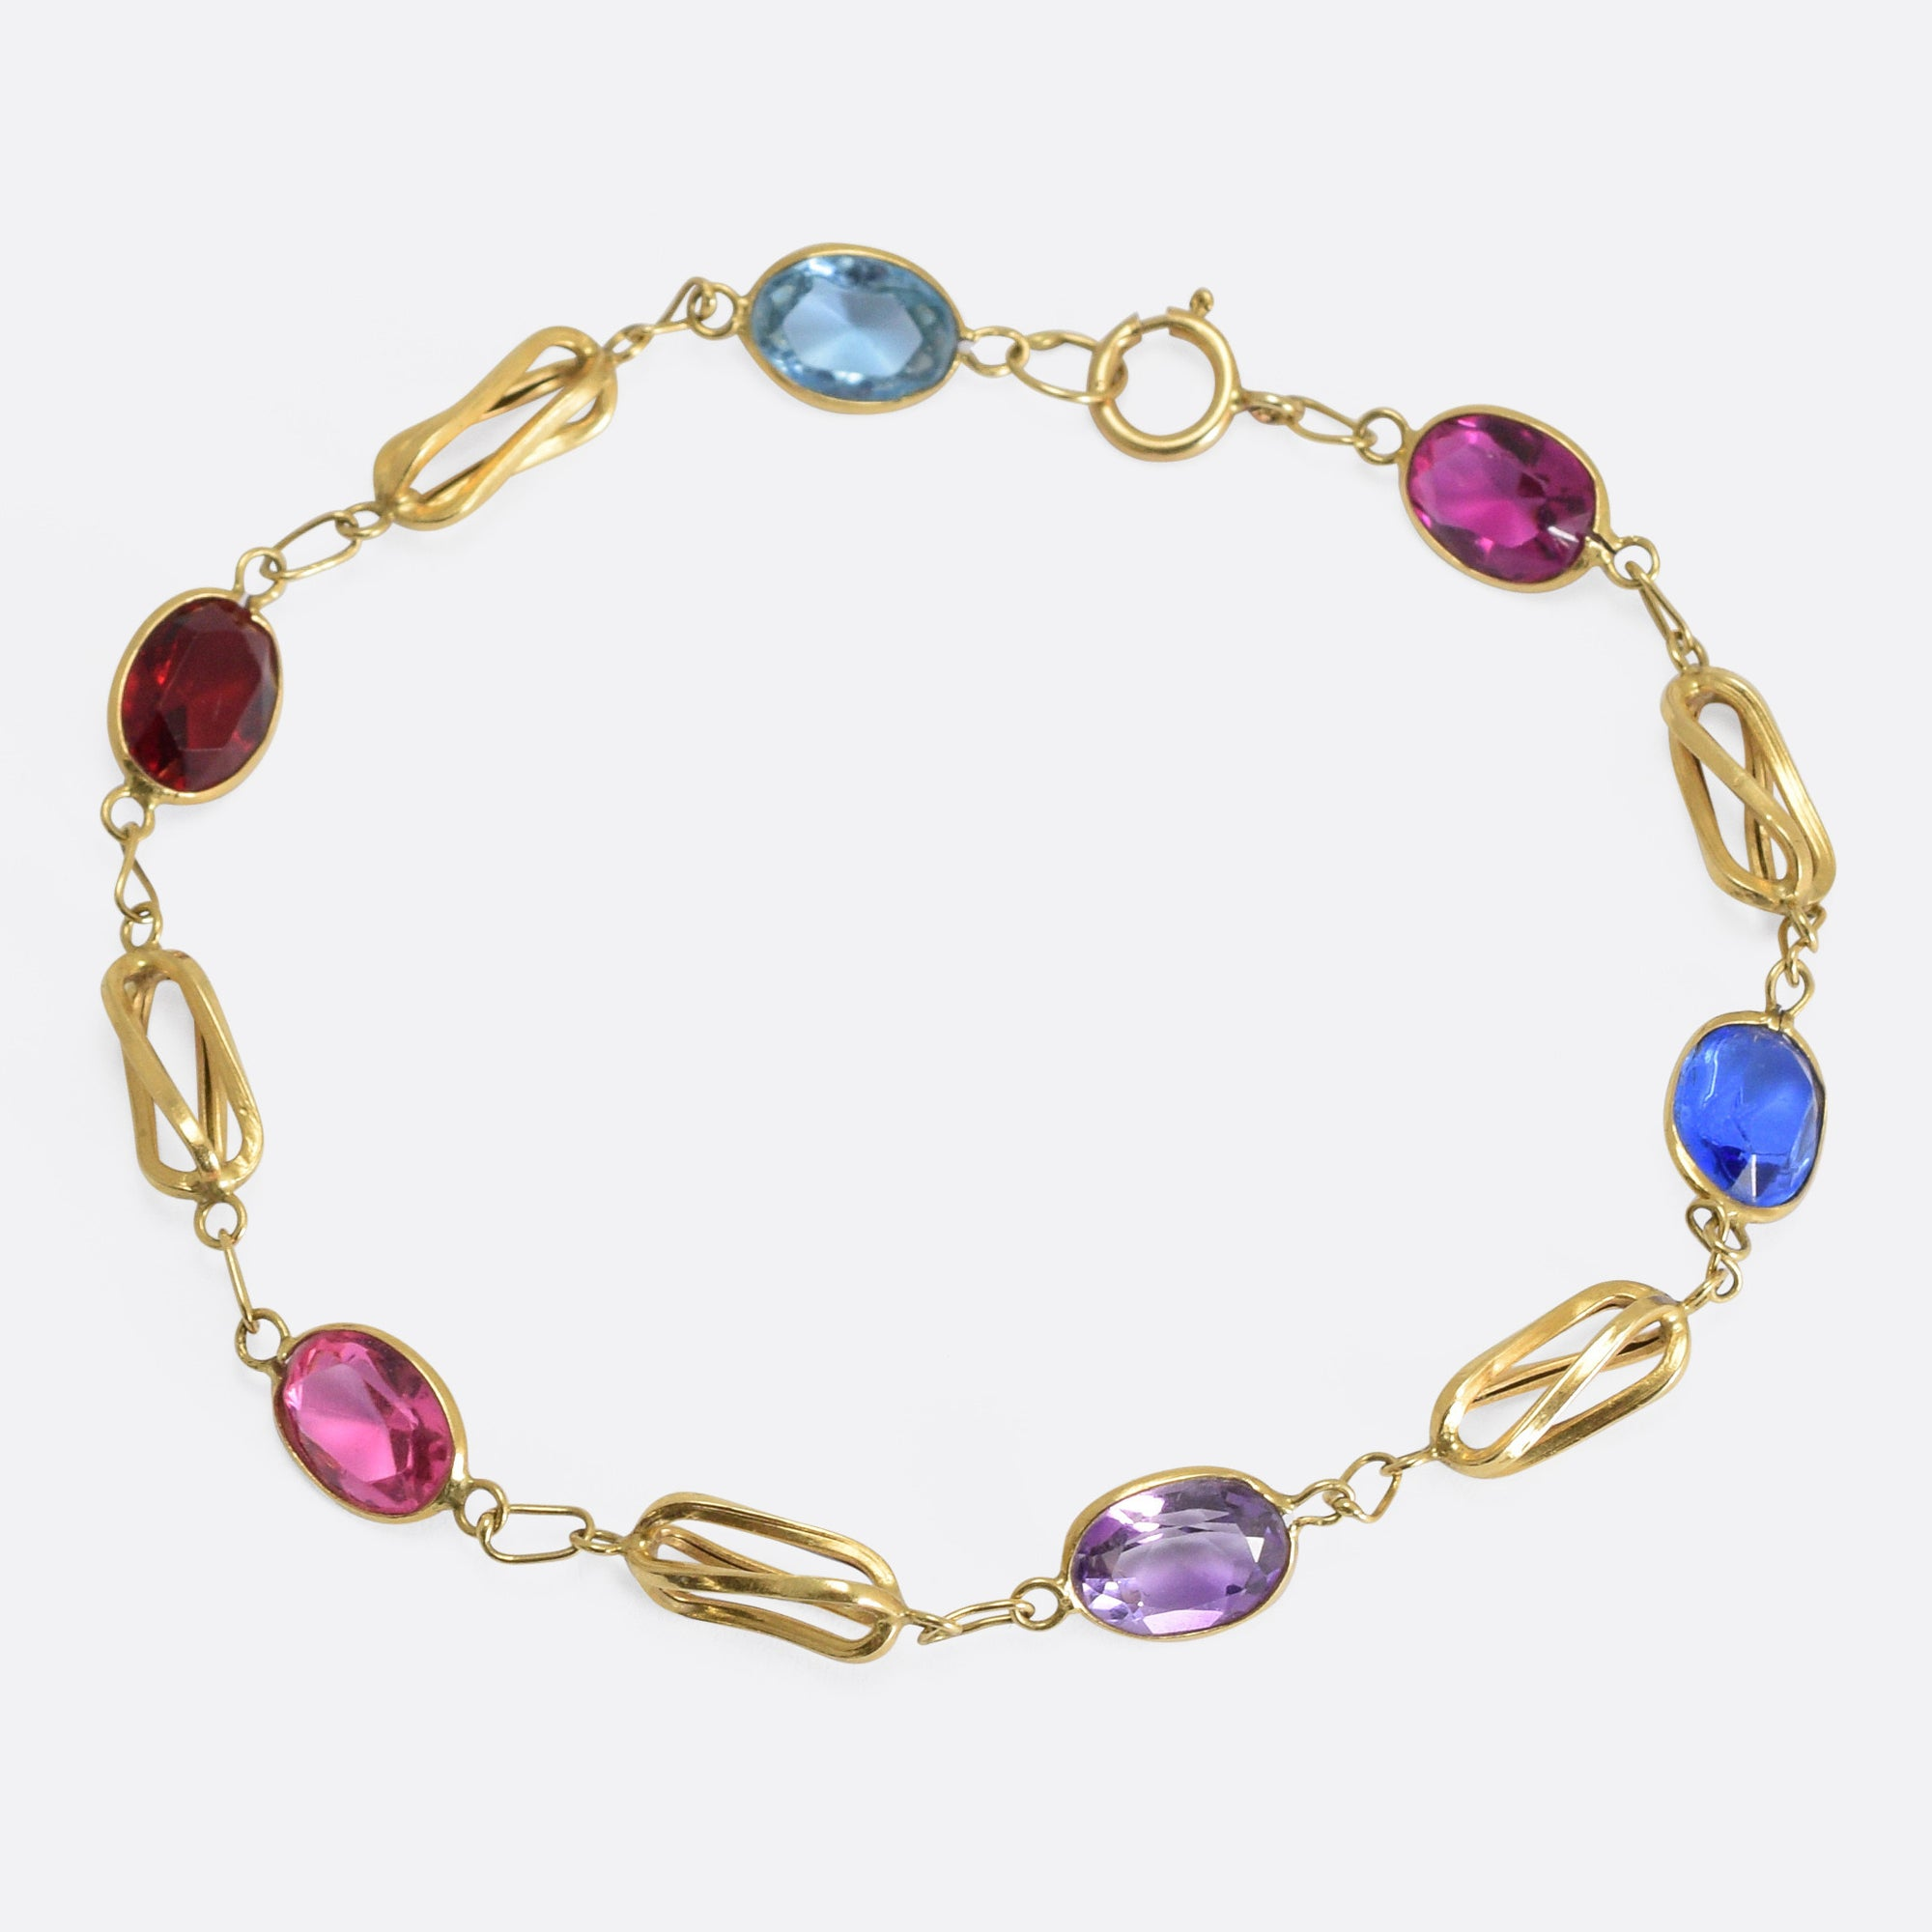 sterling sold work extra fine lane wide gemstone vintage open item multi ruby silver bracelet